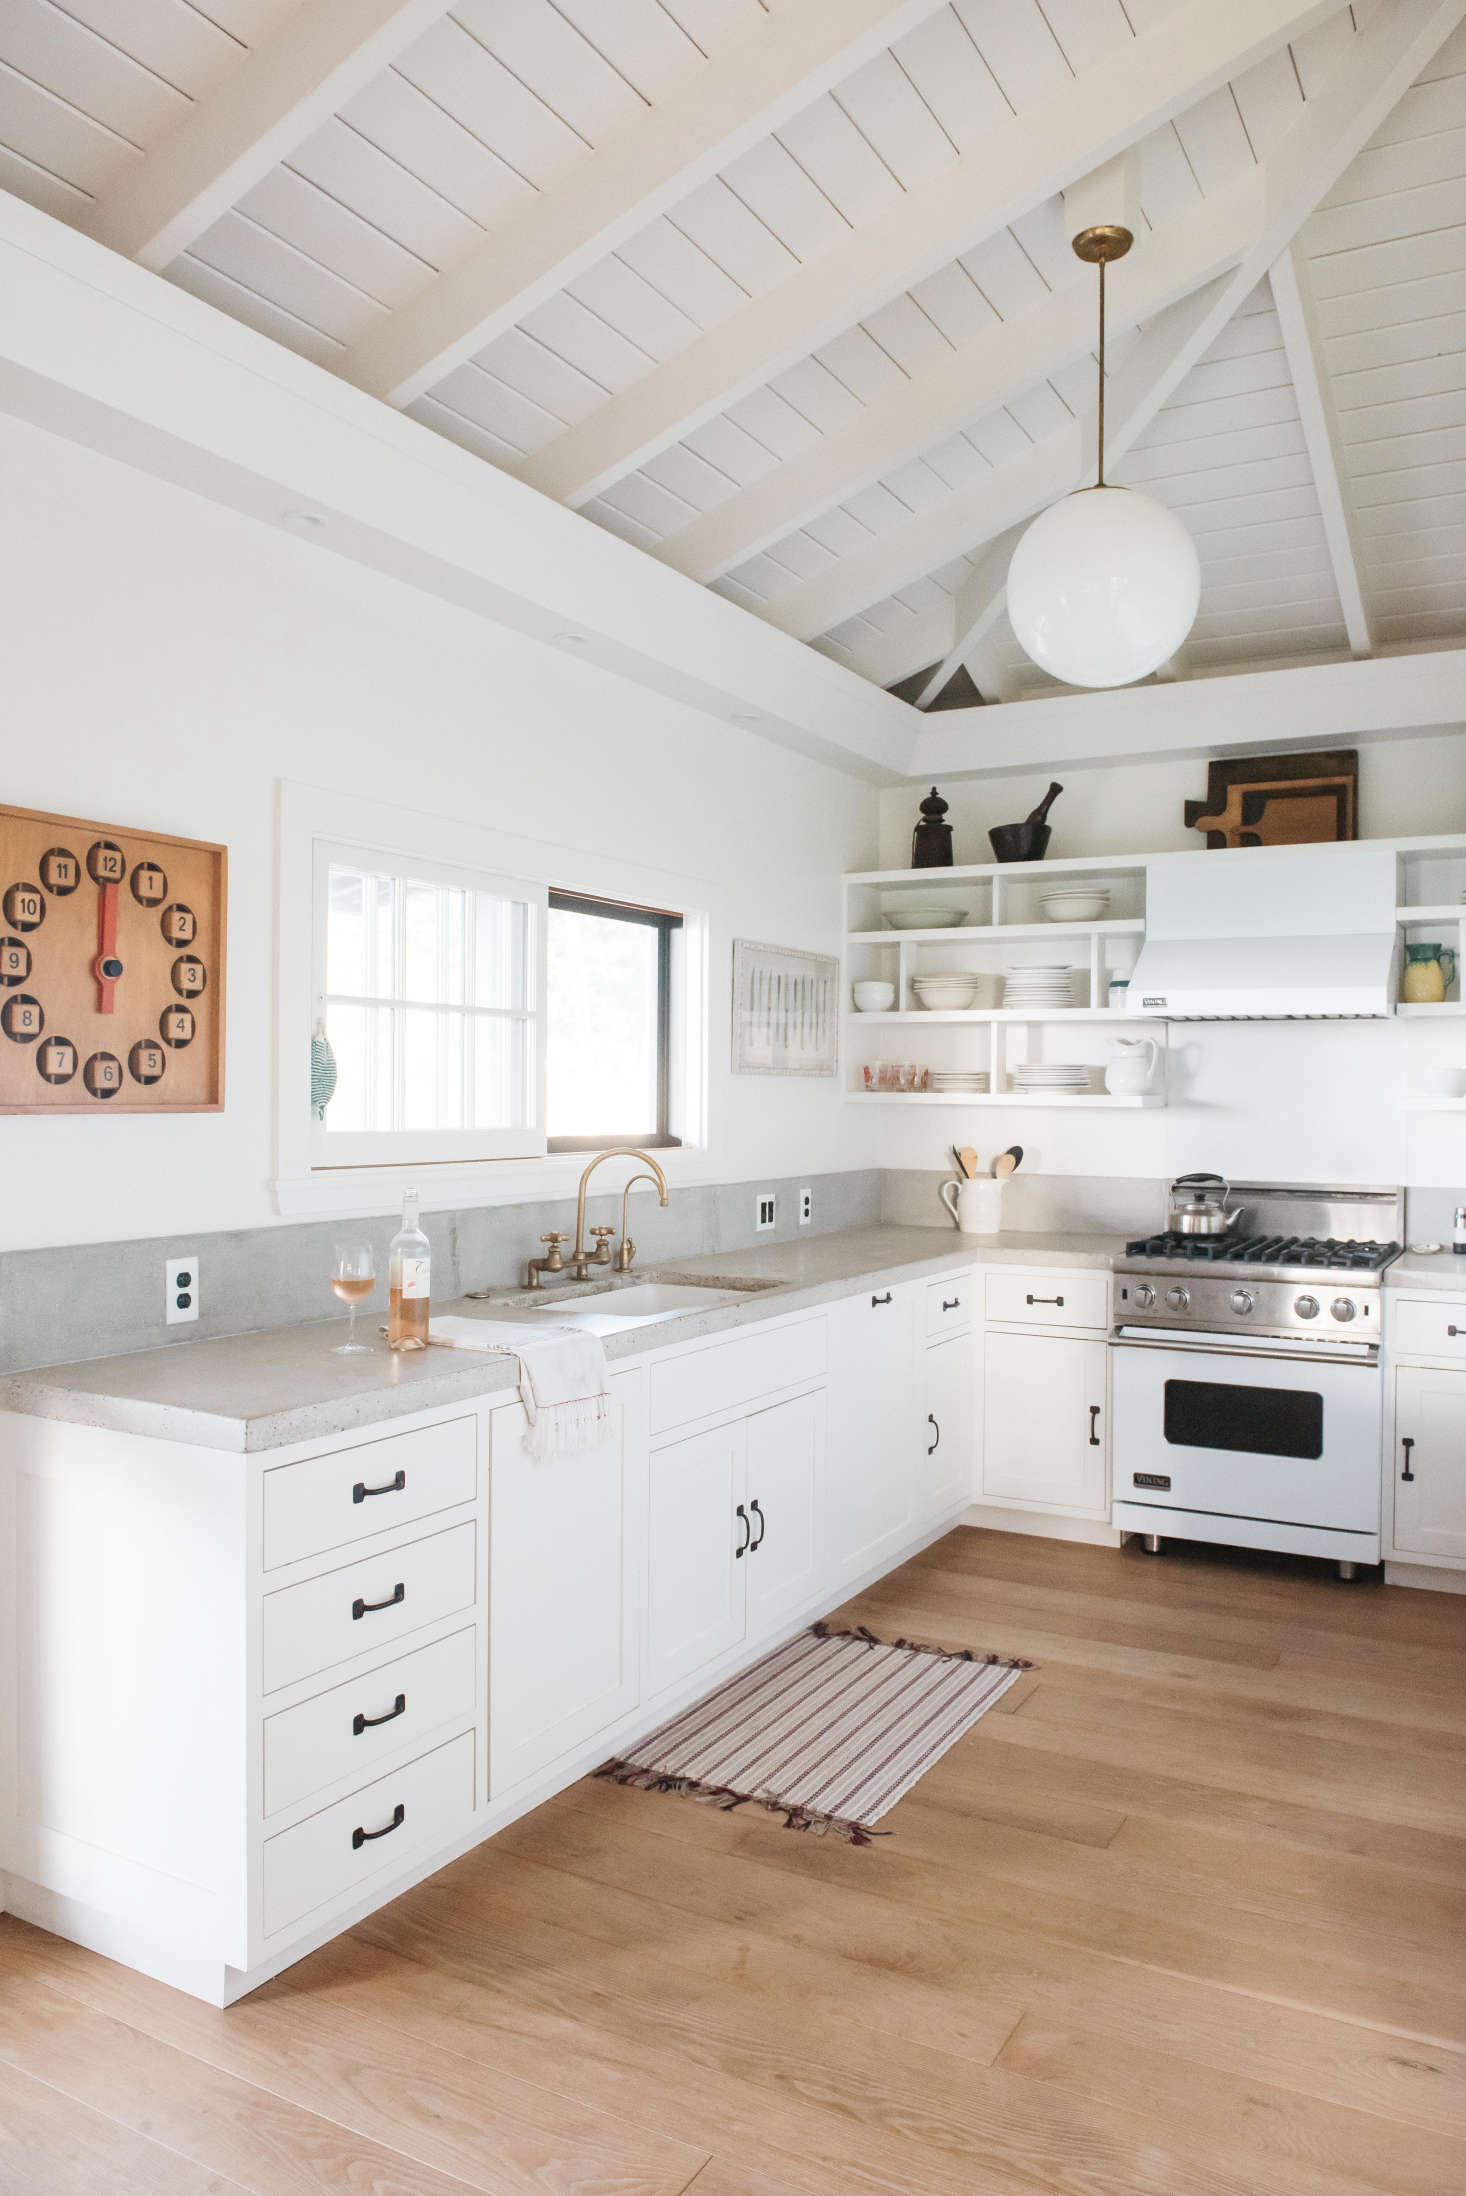 A Viking range fits with the white color scheme inA Vintage Hawaiian Cottage Restored (with Its Own Instagram Account).